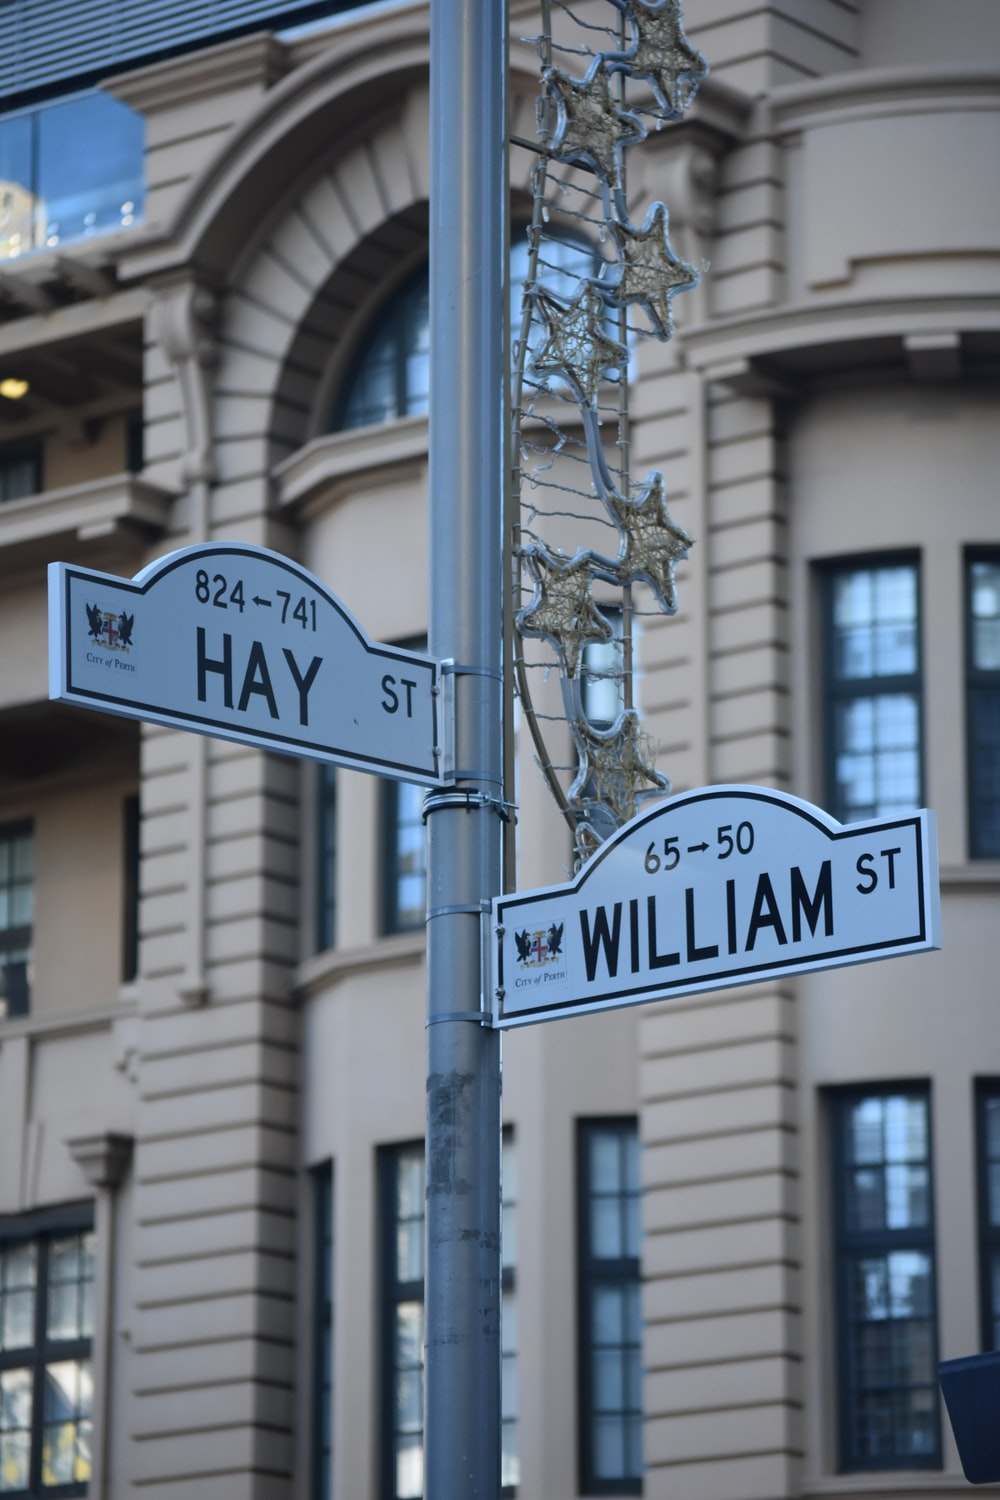 Hay and William road street signage